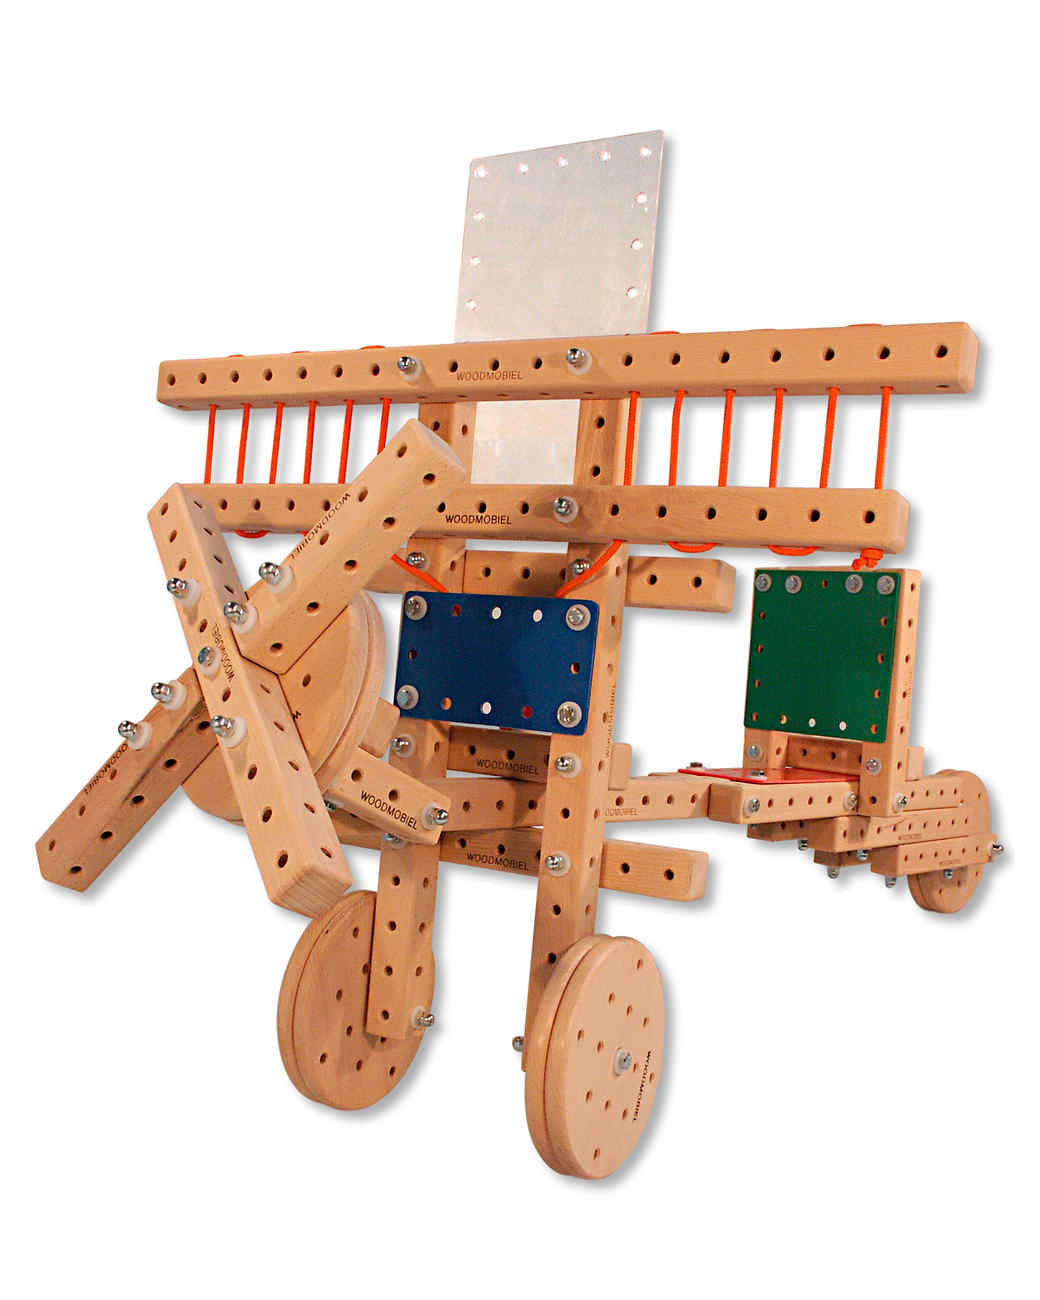 woodmobiel-building-set.jpg